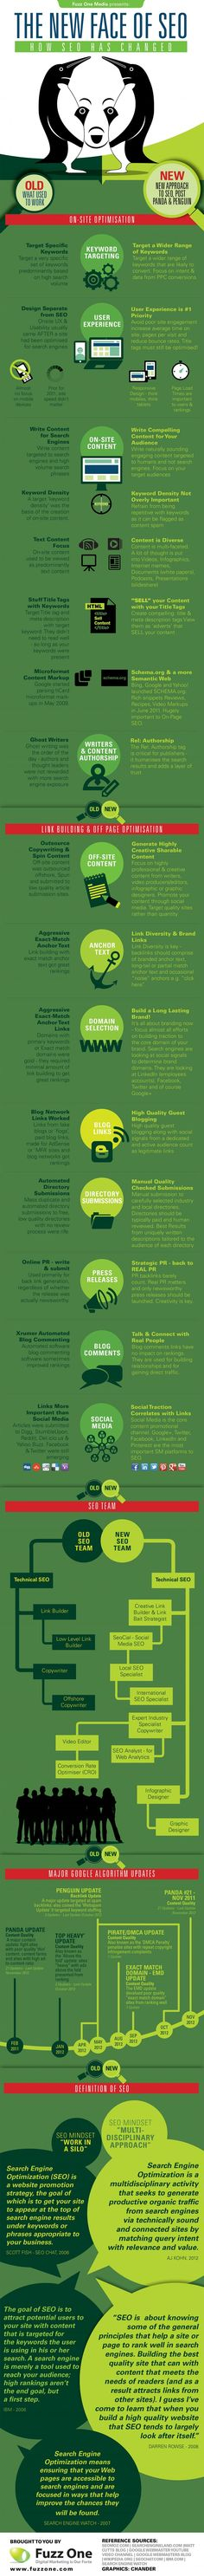 16 Best SEO Tips for 2014. SEO has changed a lot the last years and for those who want to be successful with their SEO better rethink their approach. #SEO #Marketing